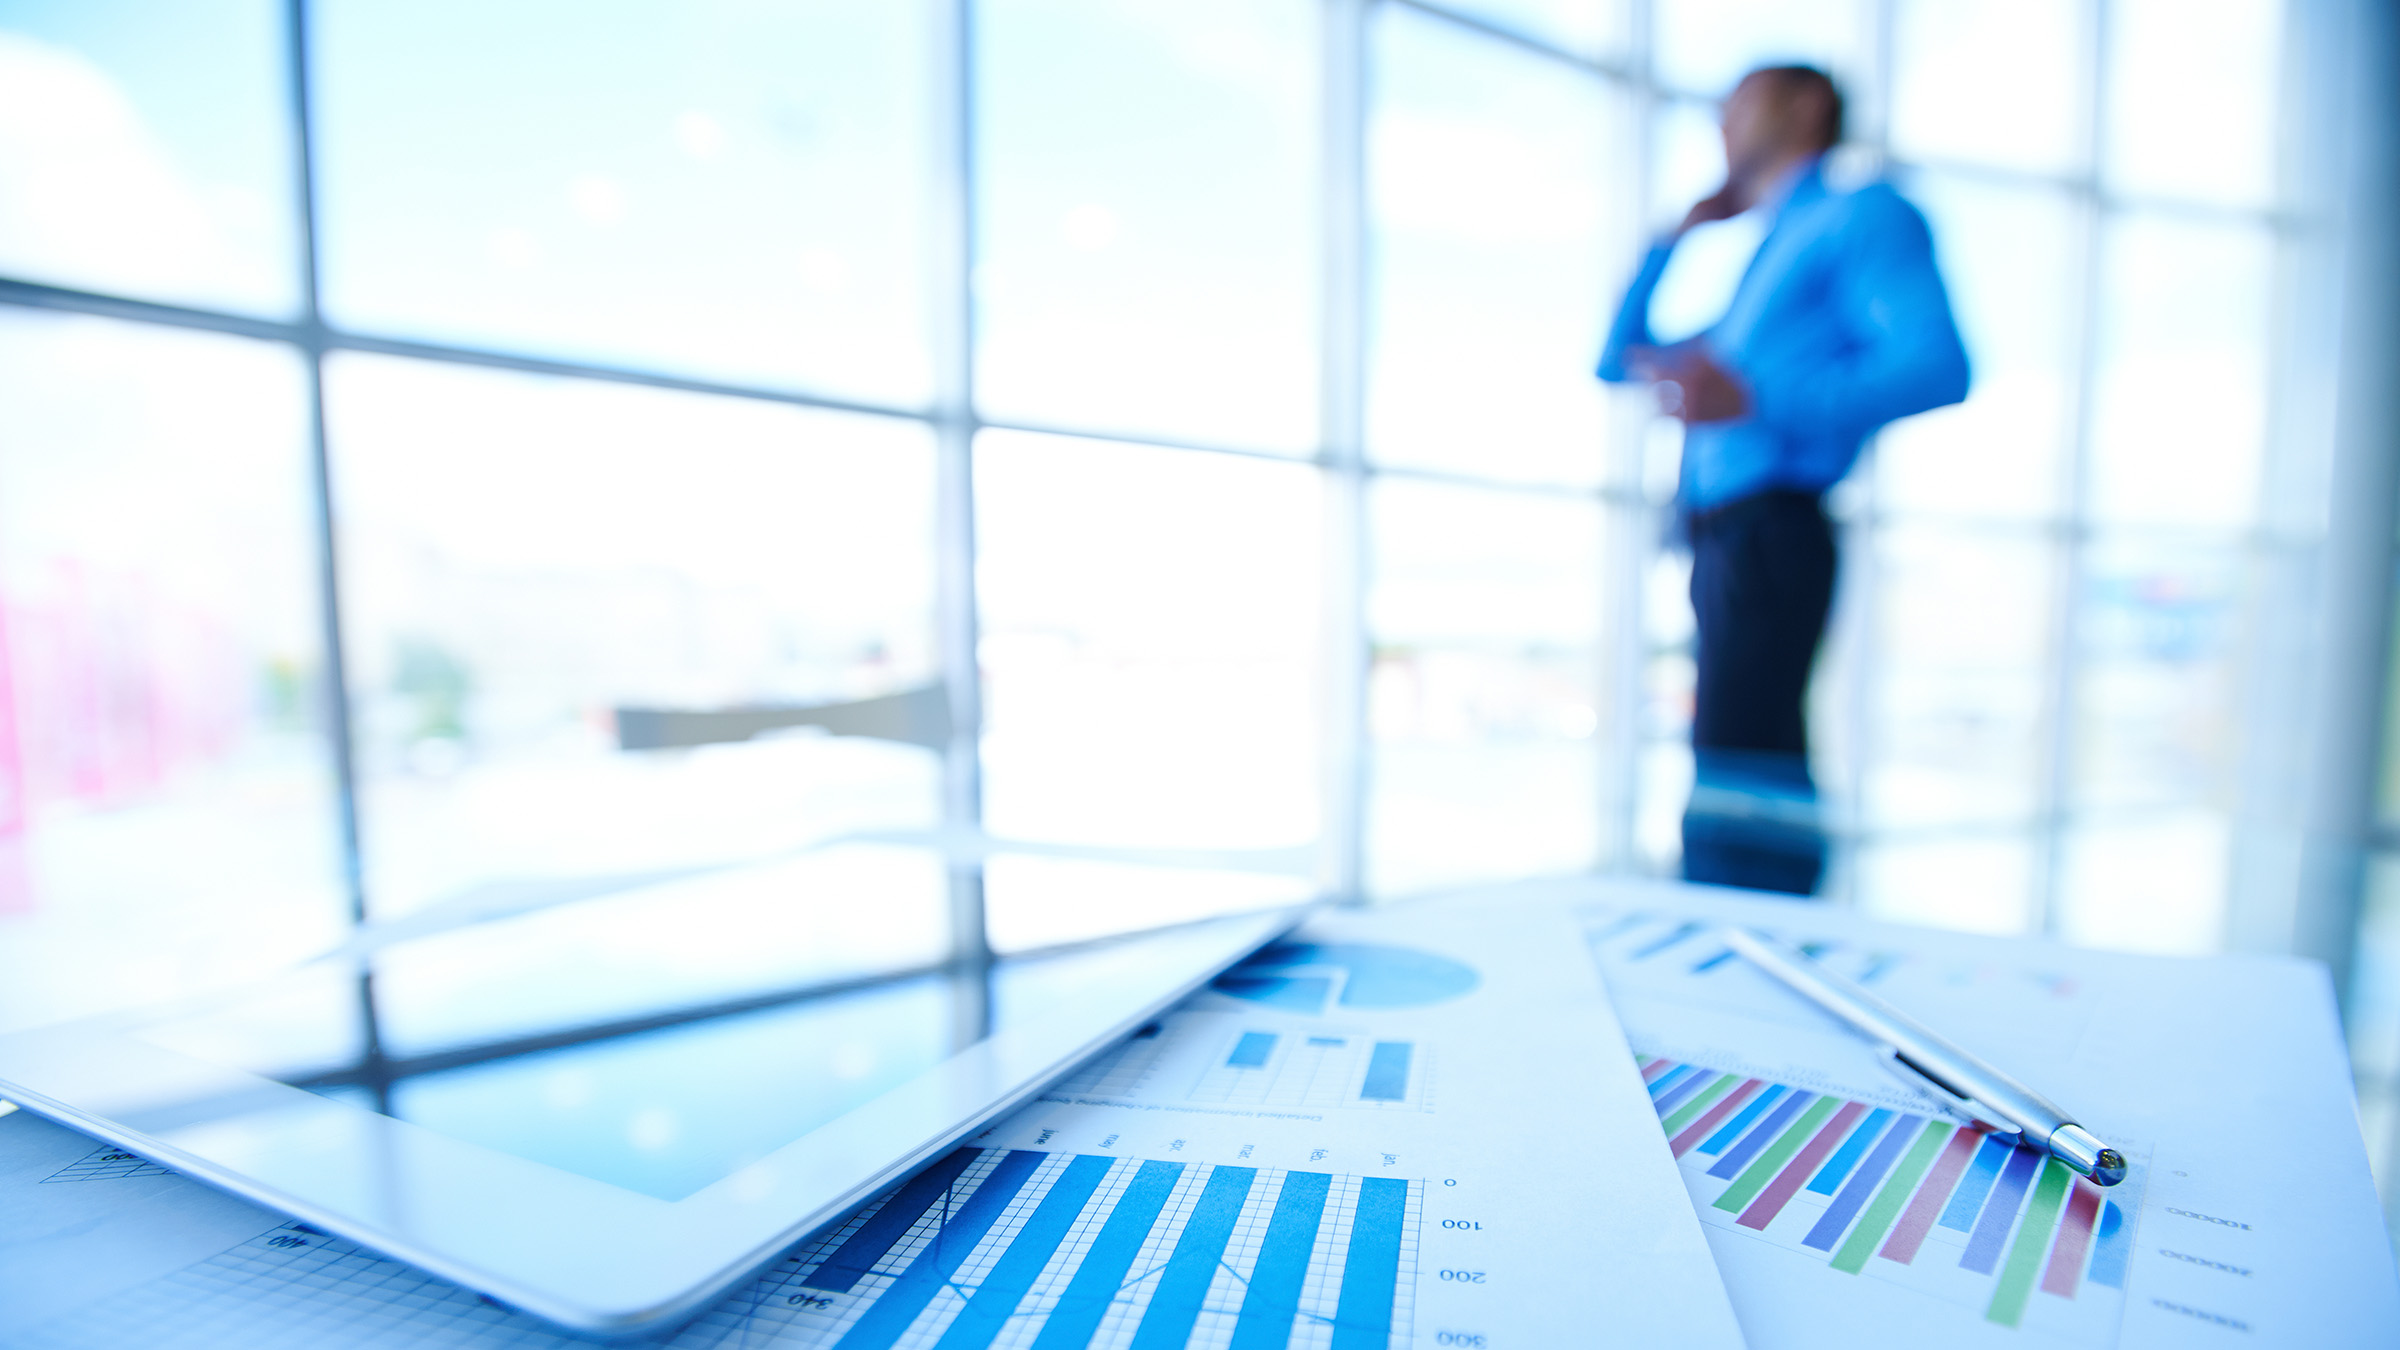 Coherent optics performance optimization with expanded applications